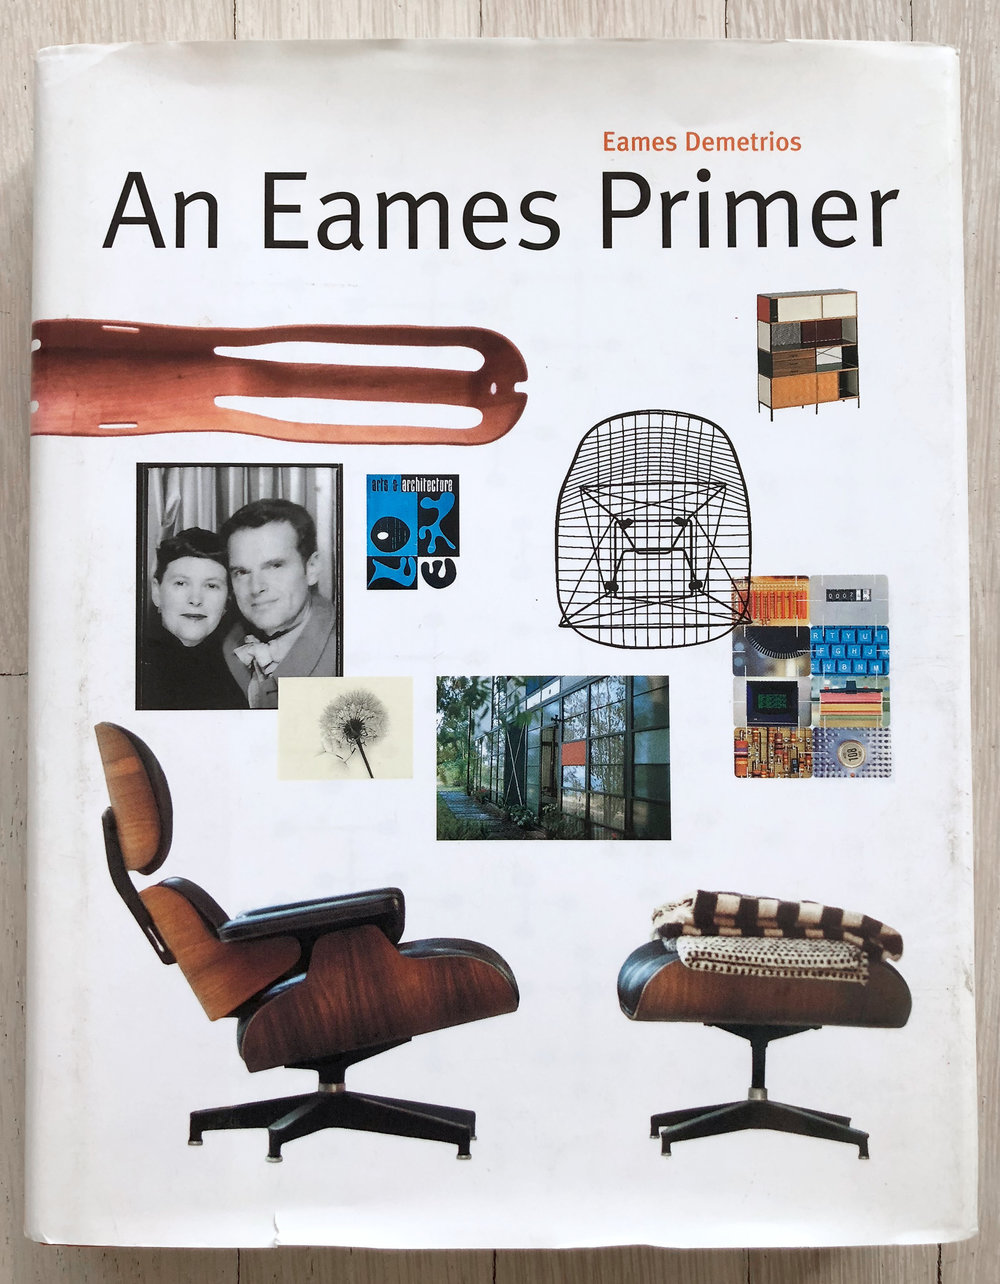 An Eames Primer  by Eames Demetrios. Editorial Concept Development by Richard Olsen. Ph.D, Graphic Design. Belinda Hellinger, Production Manager. Universe Publishing.